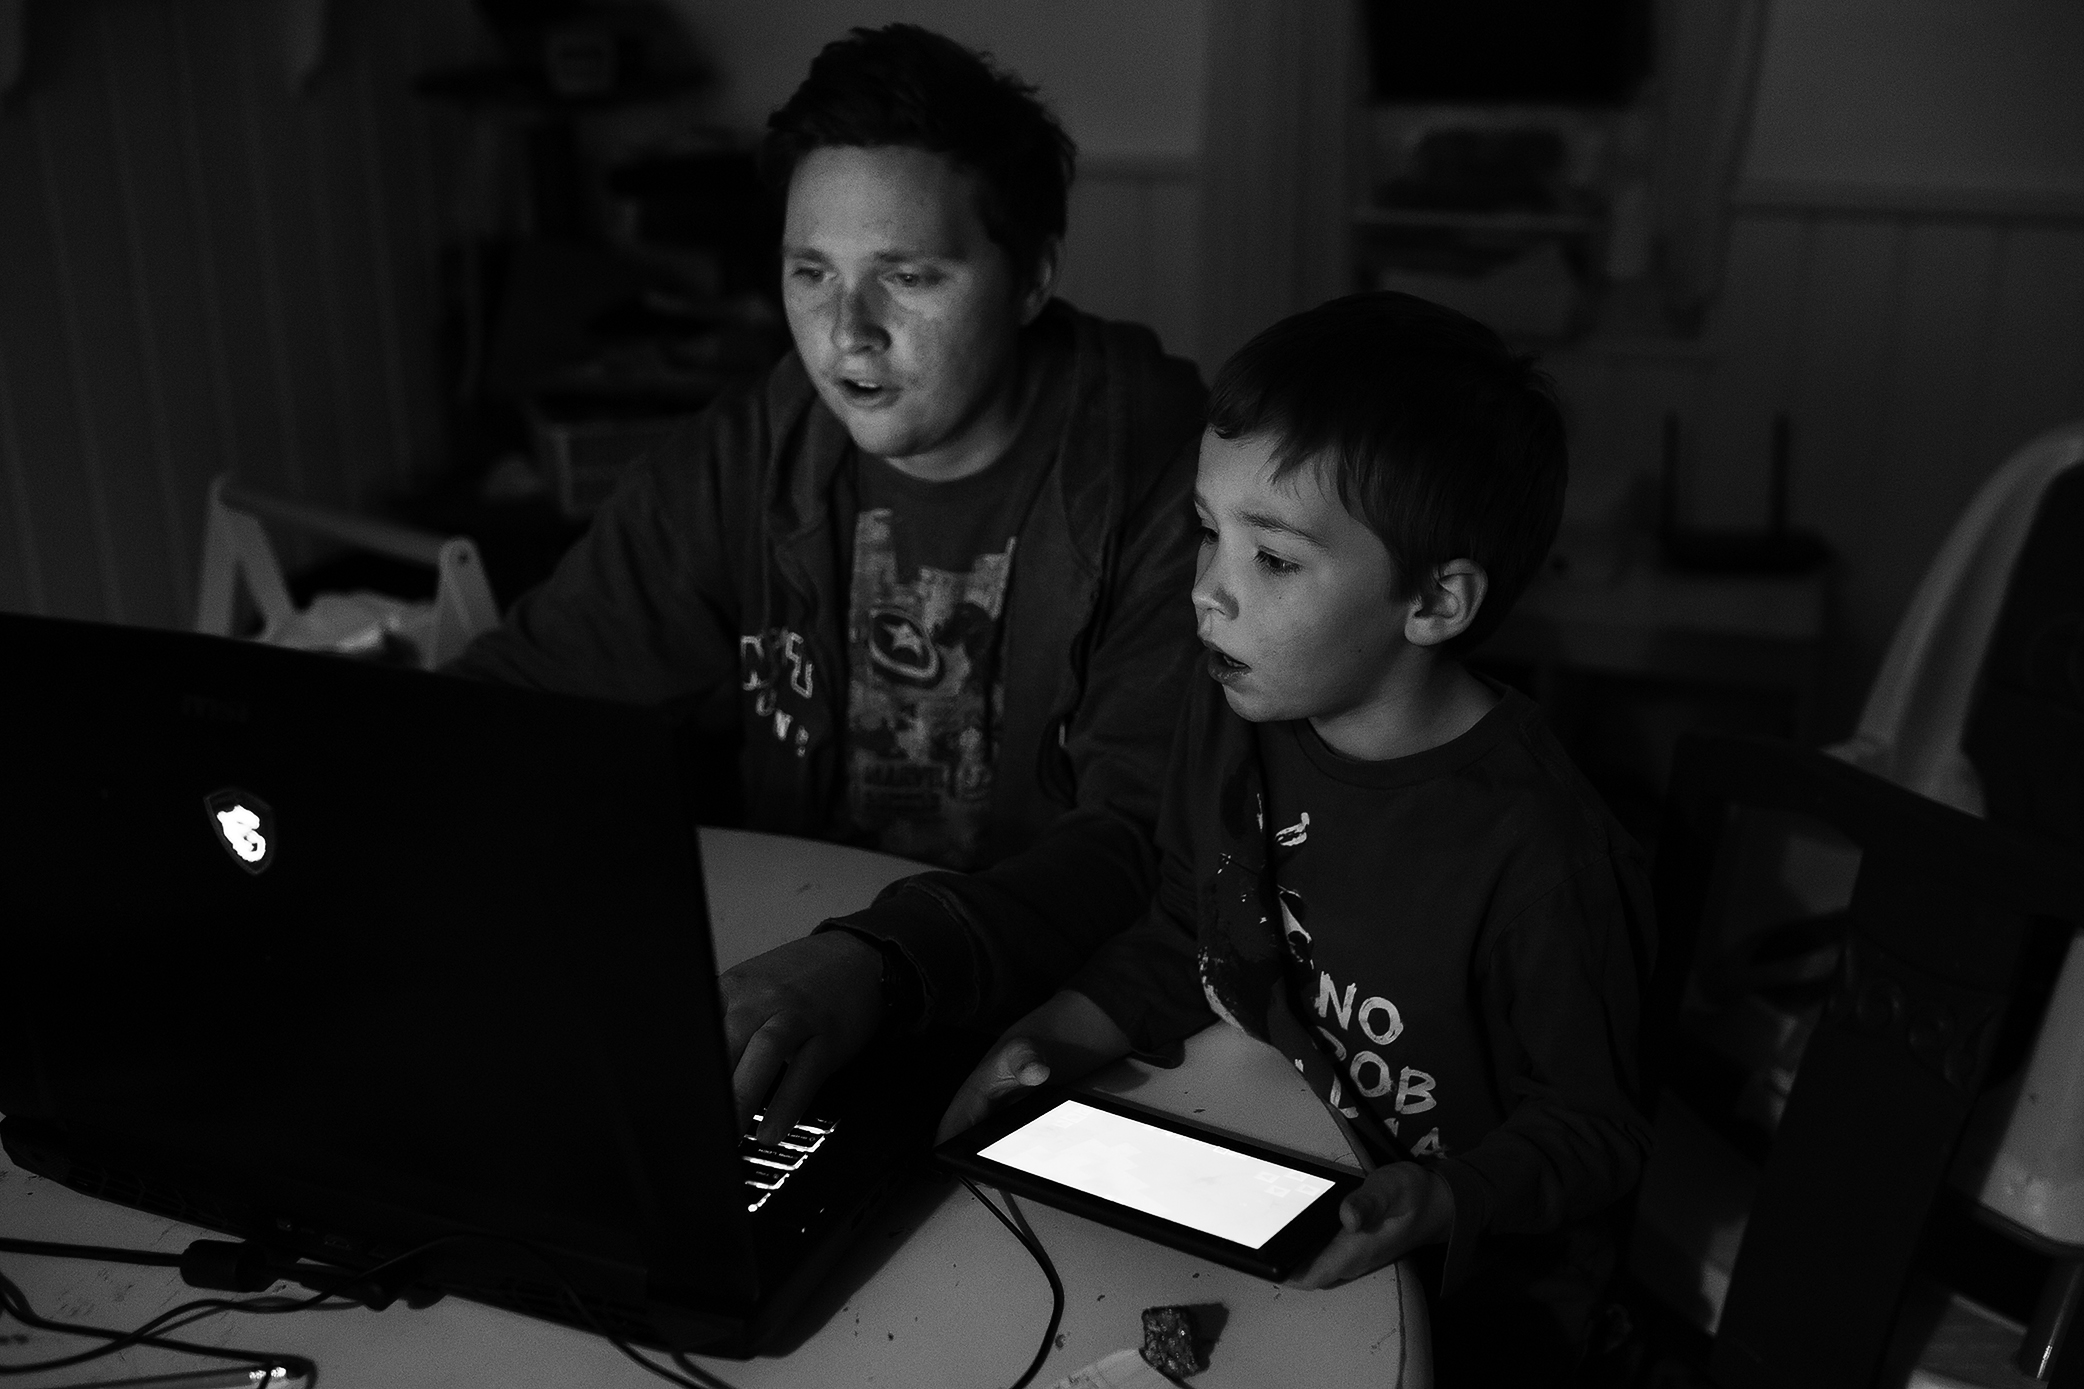 37. 365 - Father-son bonding over Minecraft. They are having a very intense discussion about what colour they should build their houses.